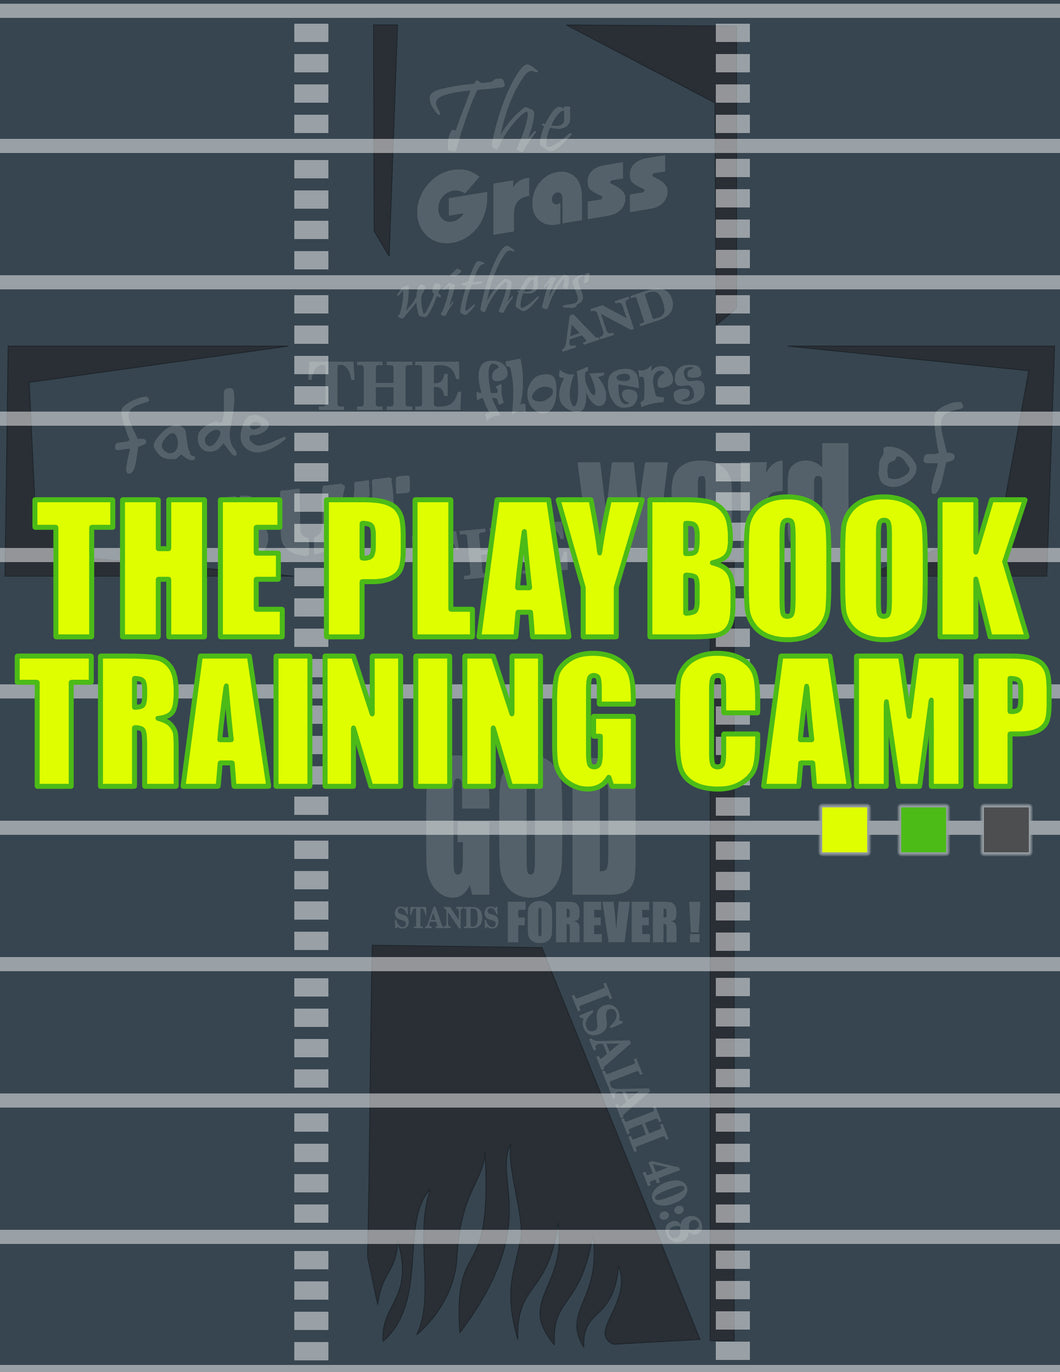 The Playbook Training Camp